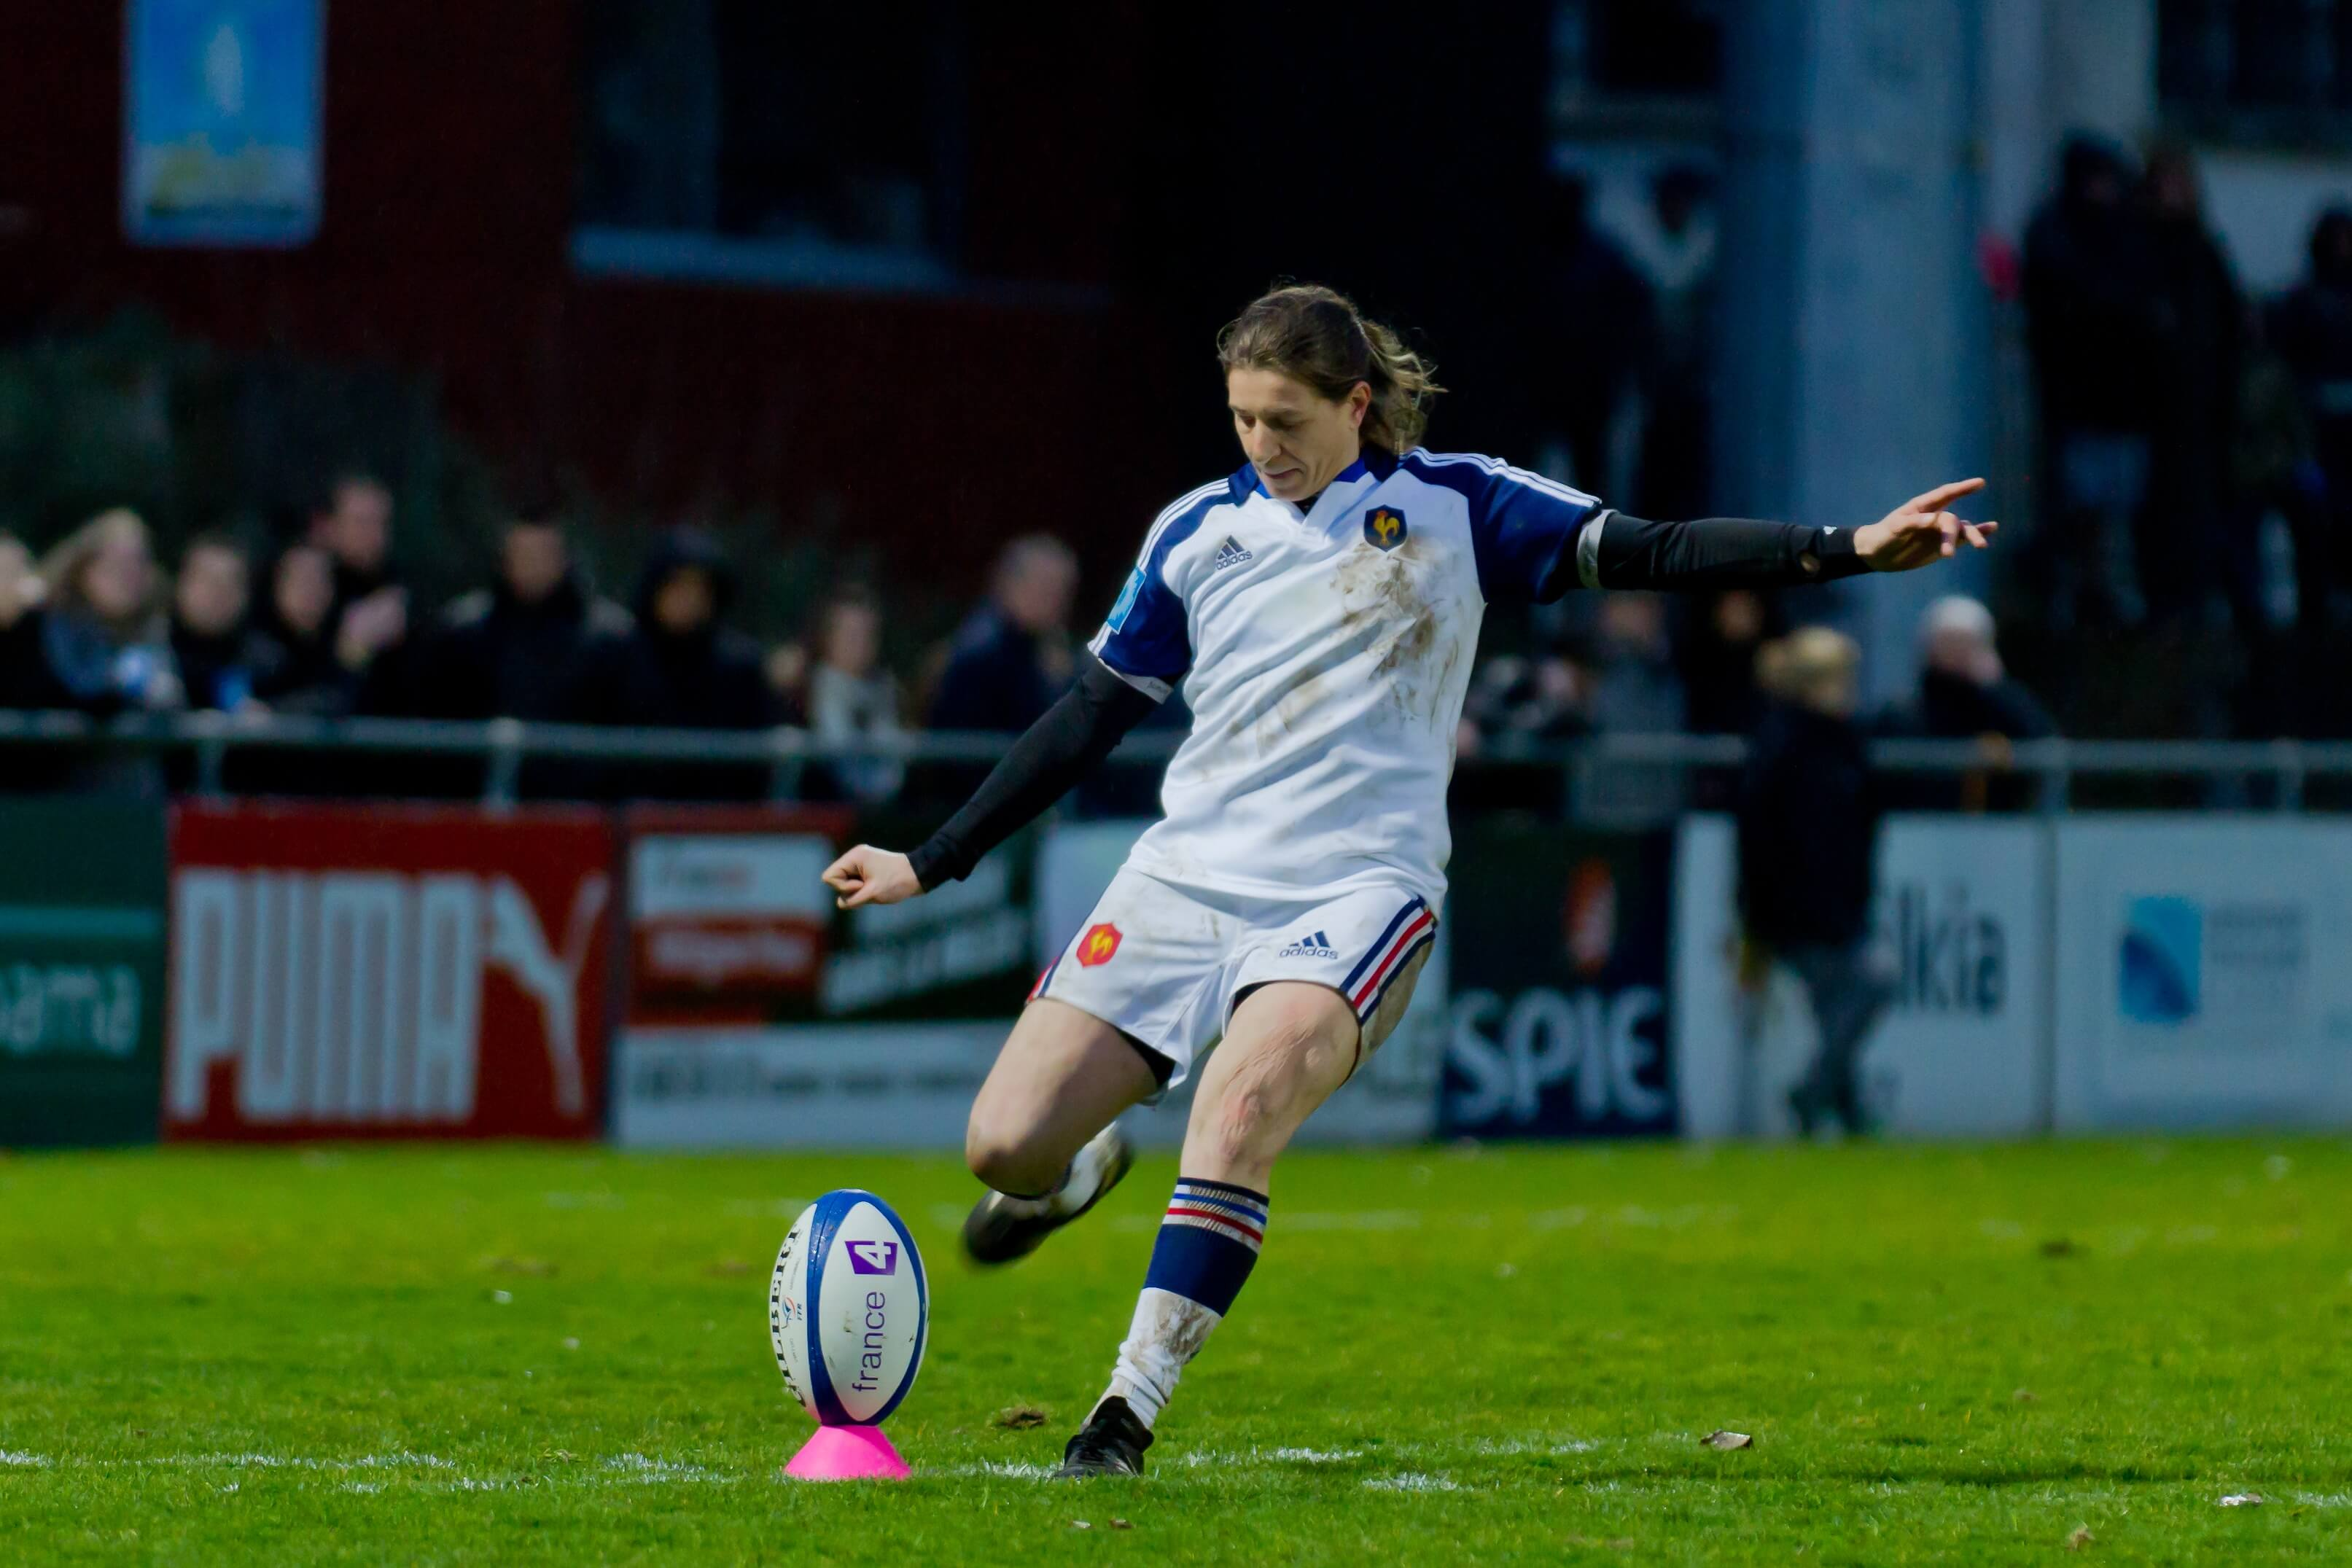 2014_W6N_-_France_vs_Italy_-_Christelle_Le_Duff_5780.jpg